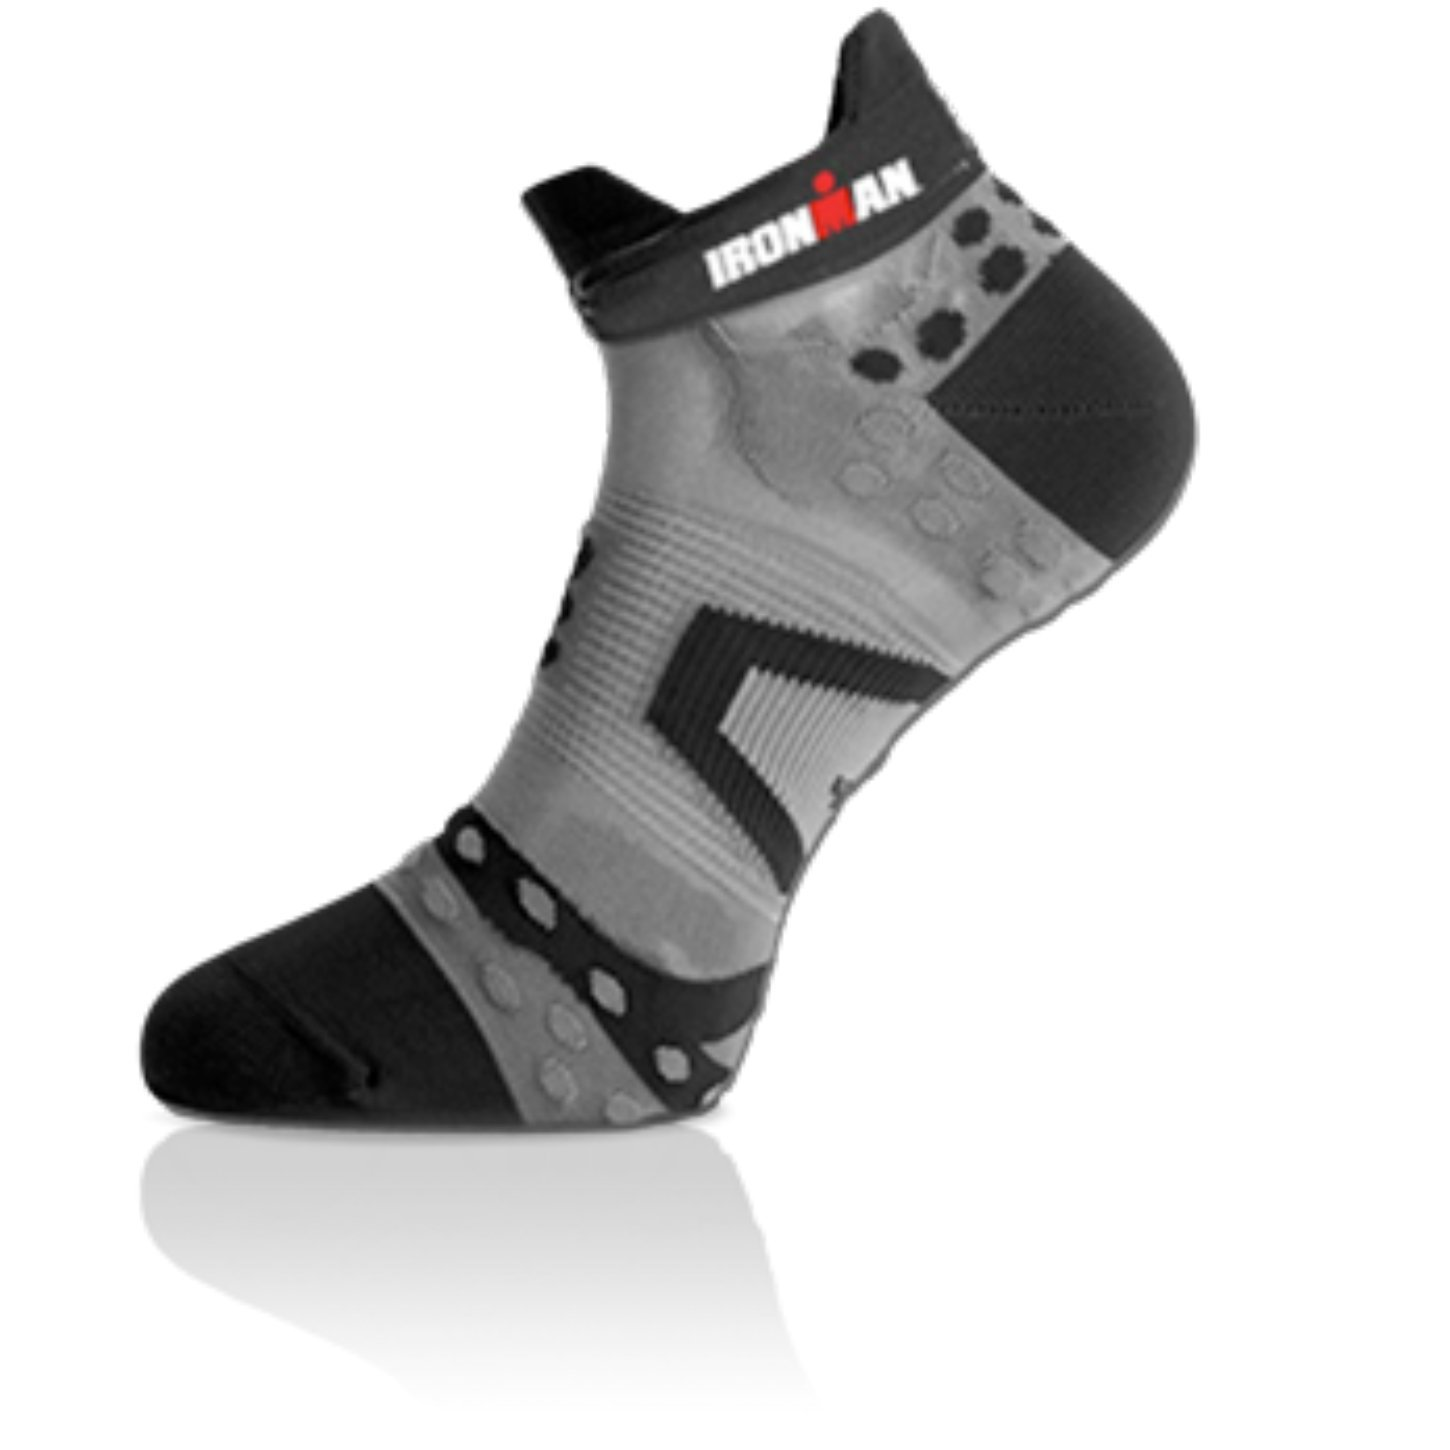 Compressport Pro corsa di calze Run Ultra light low cut Ironman Edition - solo 12 grammo - corti calzino corsa Marathon Triathlon calze- 024 011 416